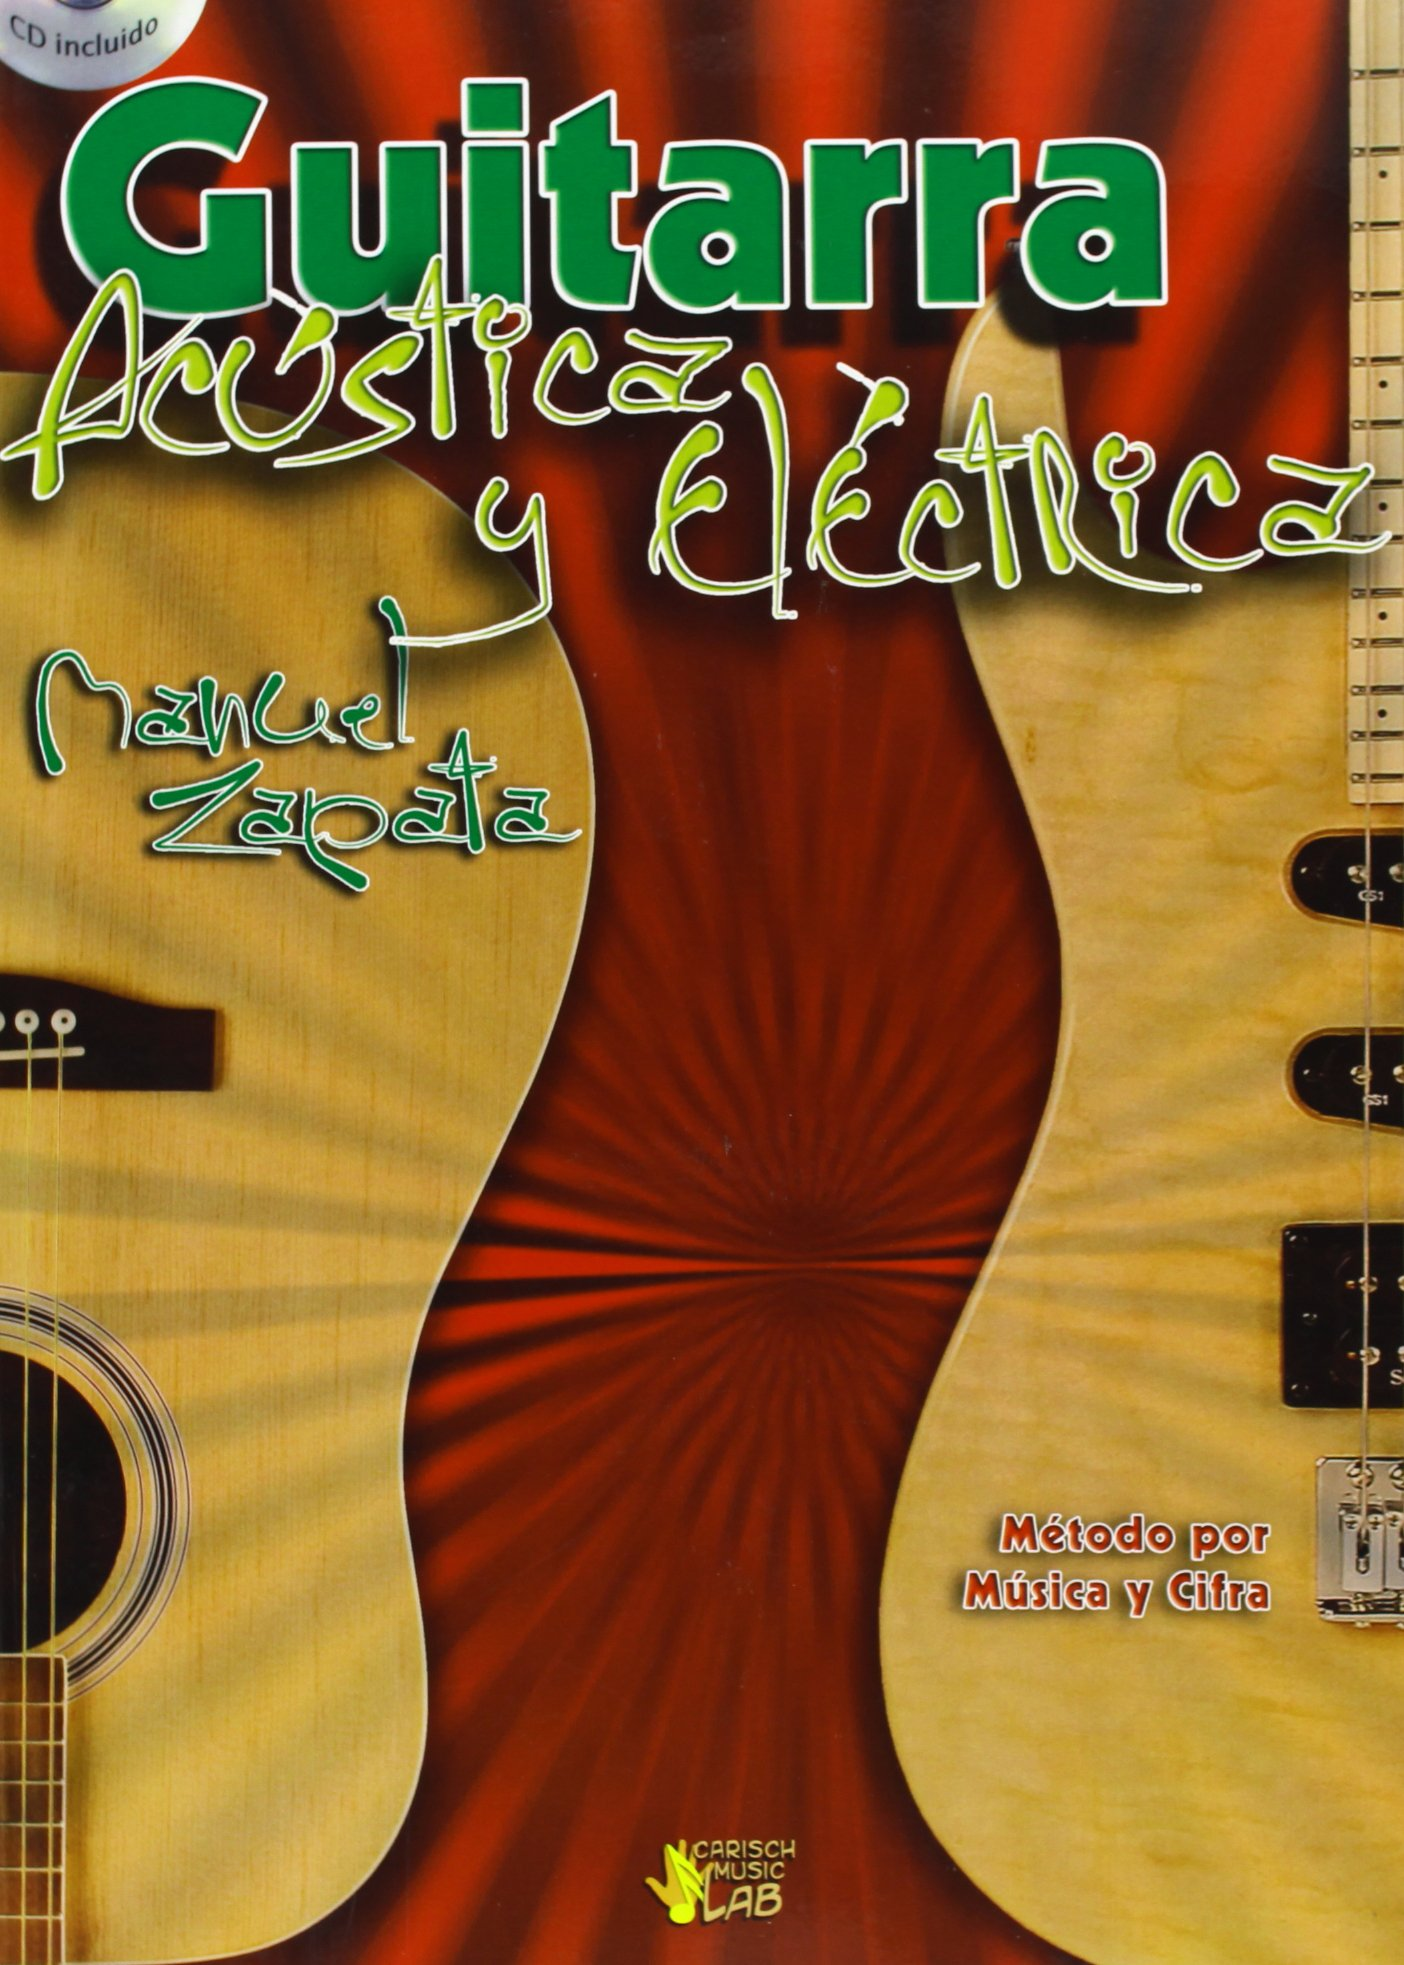 Guitarra Acustica y Electrica Carisch Music Lab Spagna: Amazon.es ...